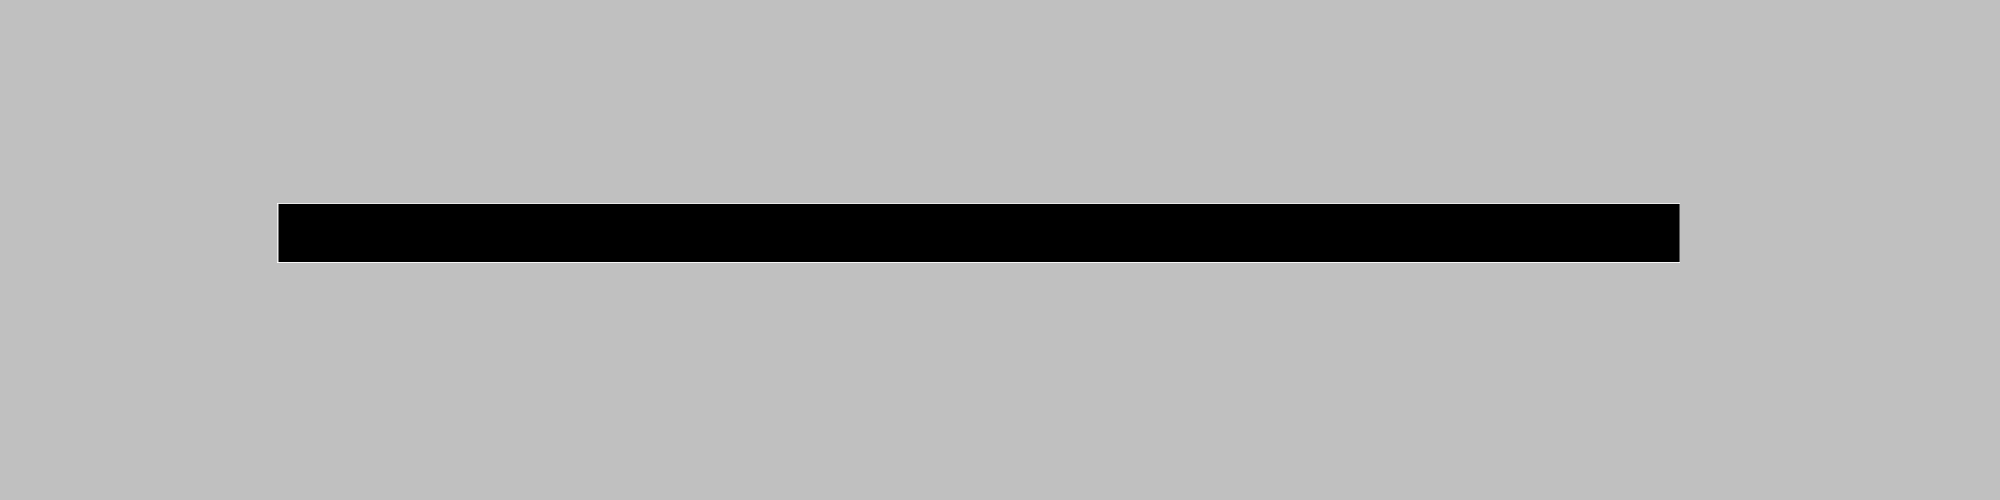 linegrey.png